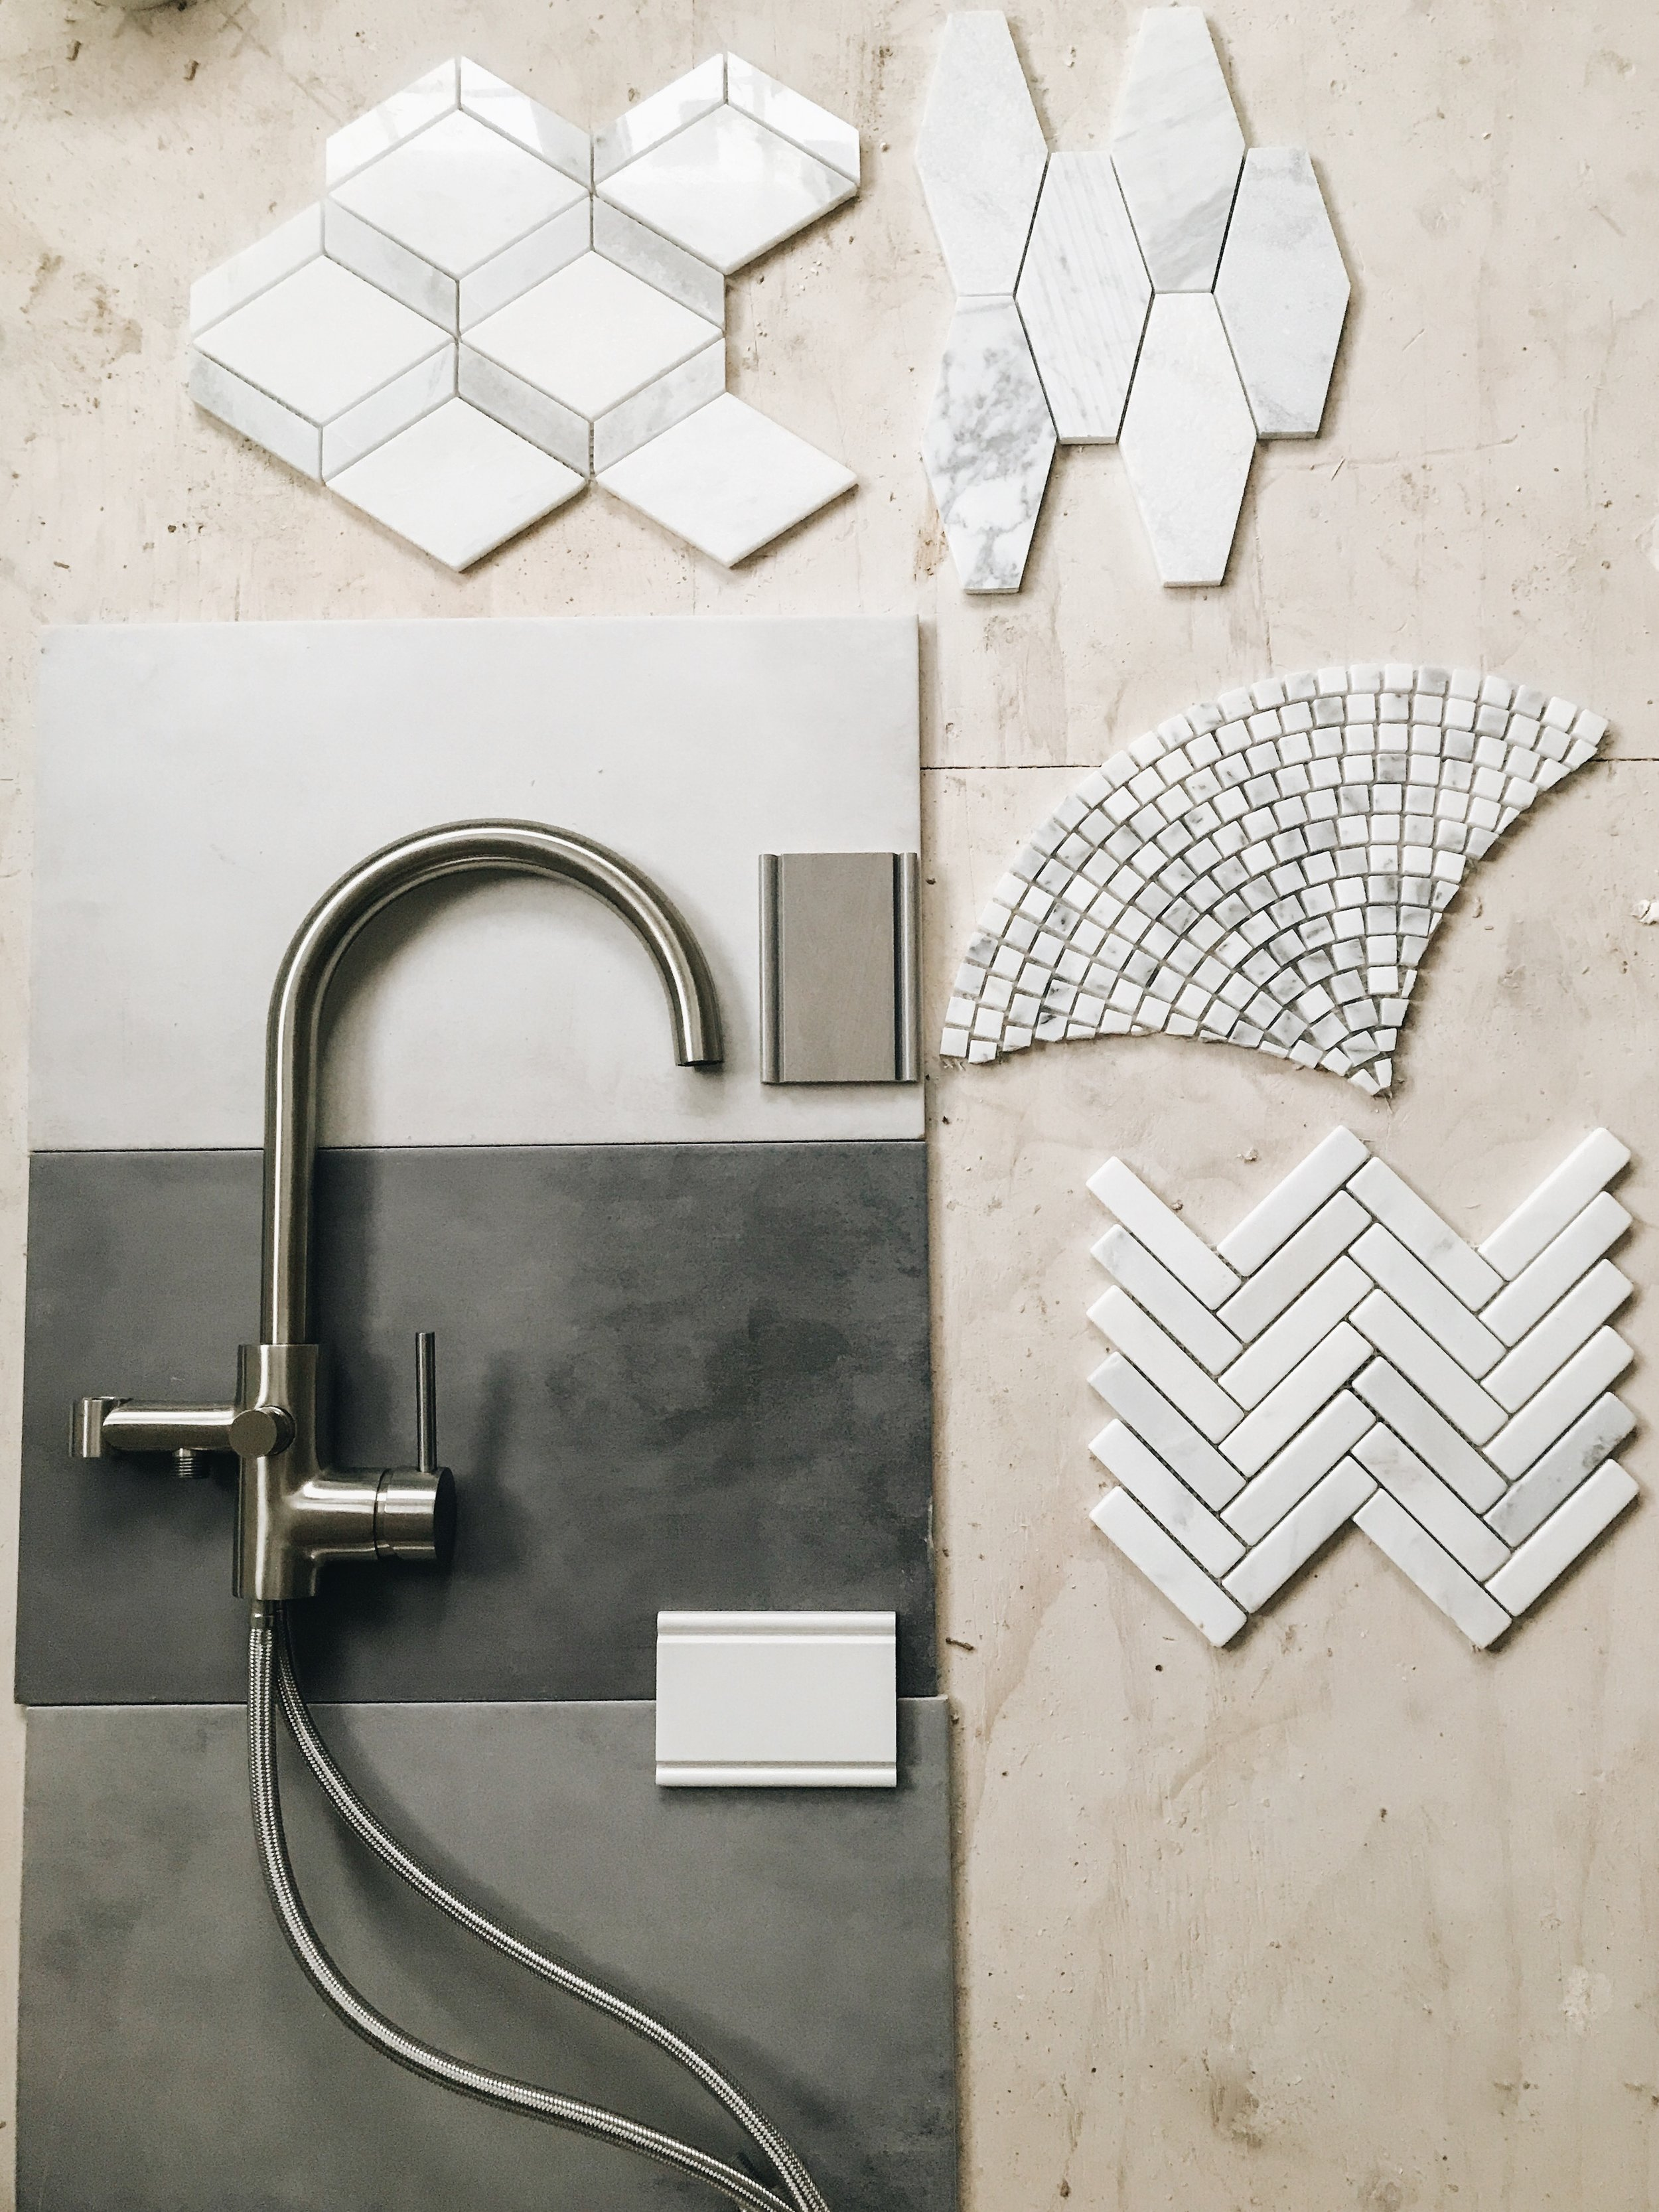 Bathroom tile ideas. Designing A Master Bath. Bathroom remodeling ideas. Modern bathroom design. New bathroom construction. Master bathroom freestanding tub and marble shower ideas. #wetstyle #sponsored #newconstruction #modern #master #bathroom